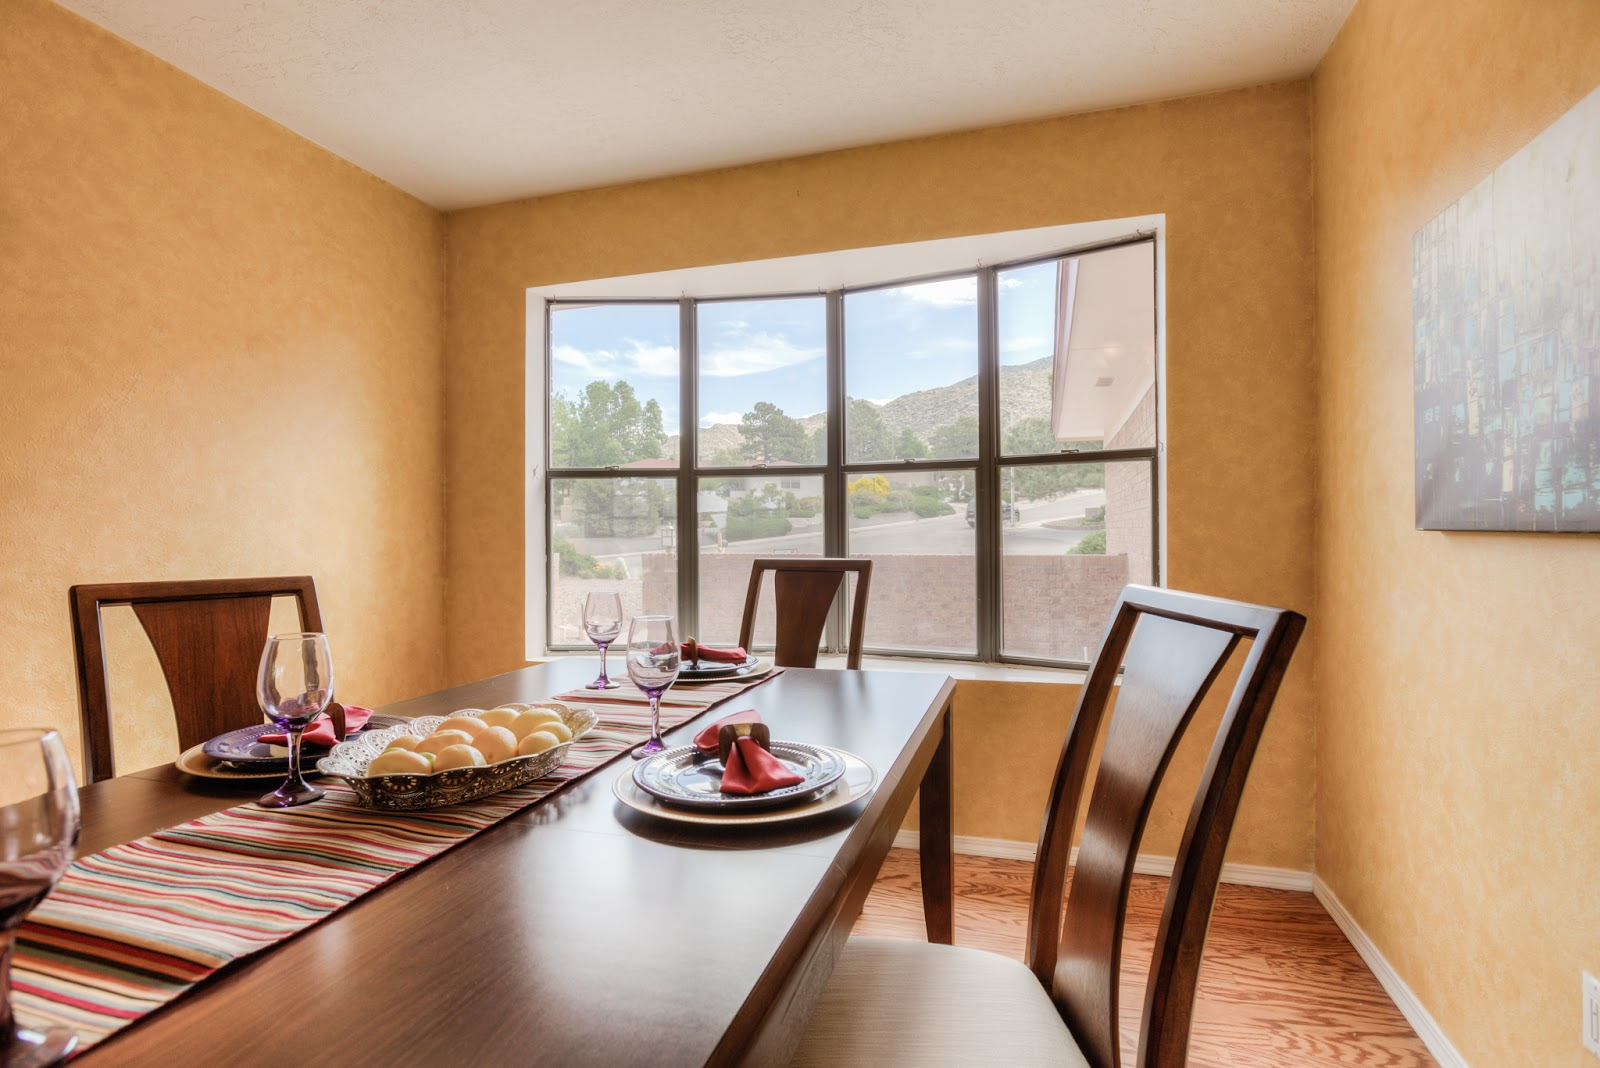 Home Staging In Albuquerque Sold In Less Than 30 Days After Staging Glenwood Hills South